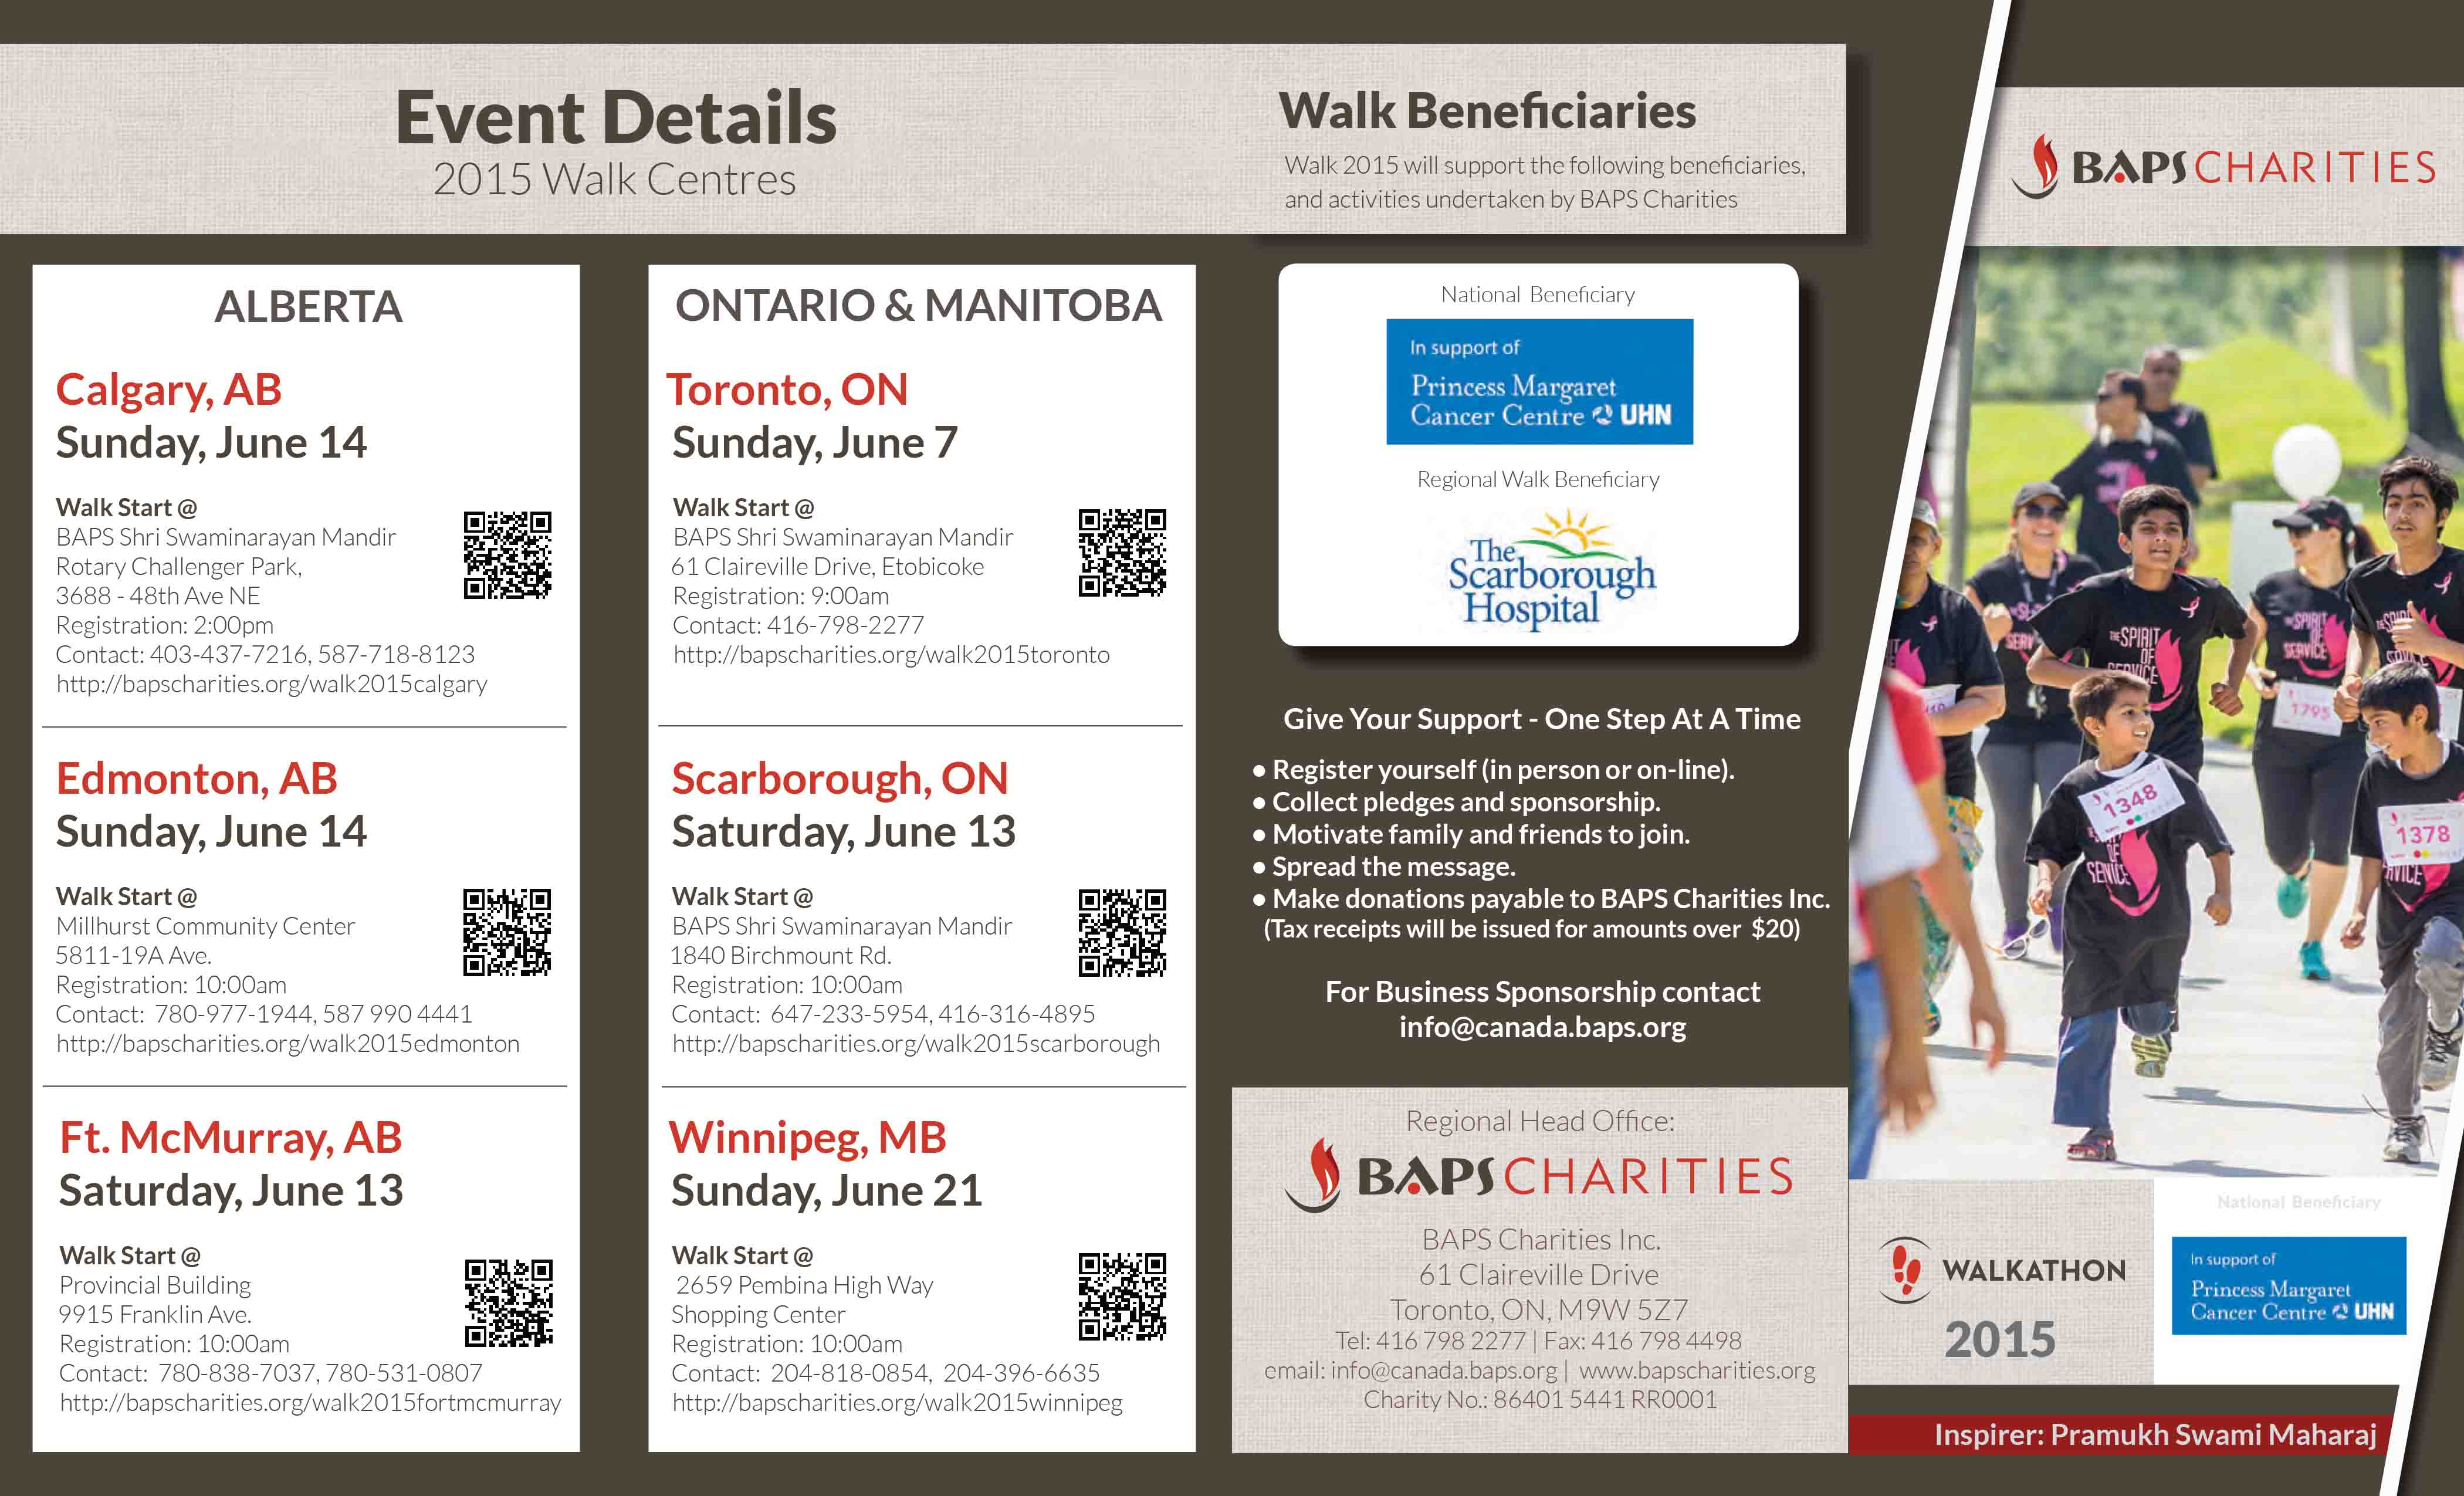 BAPS Charities Walkathon in CANADA